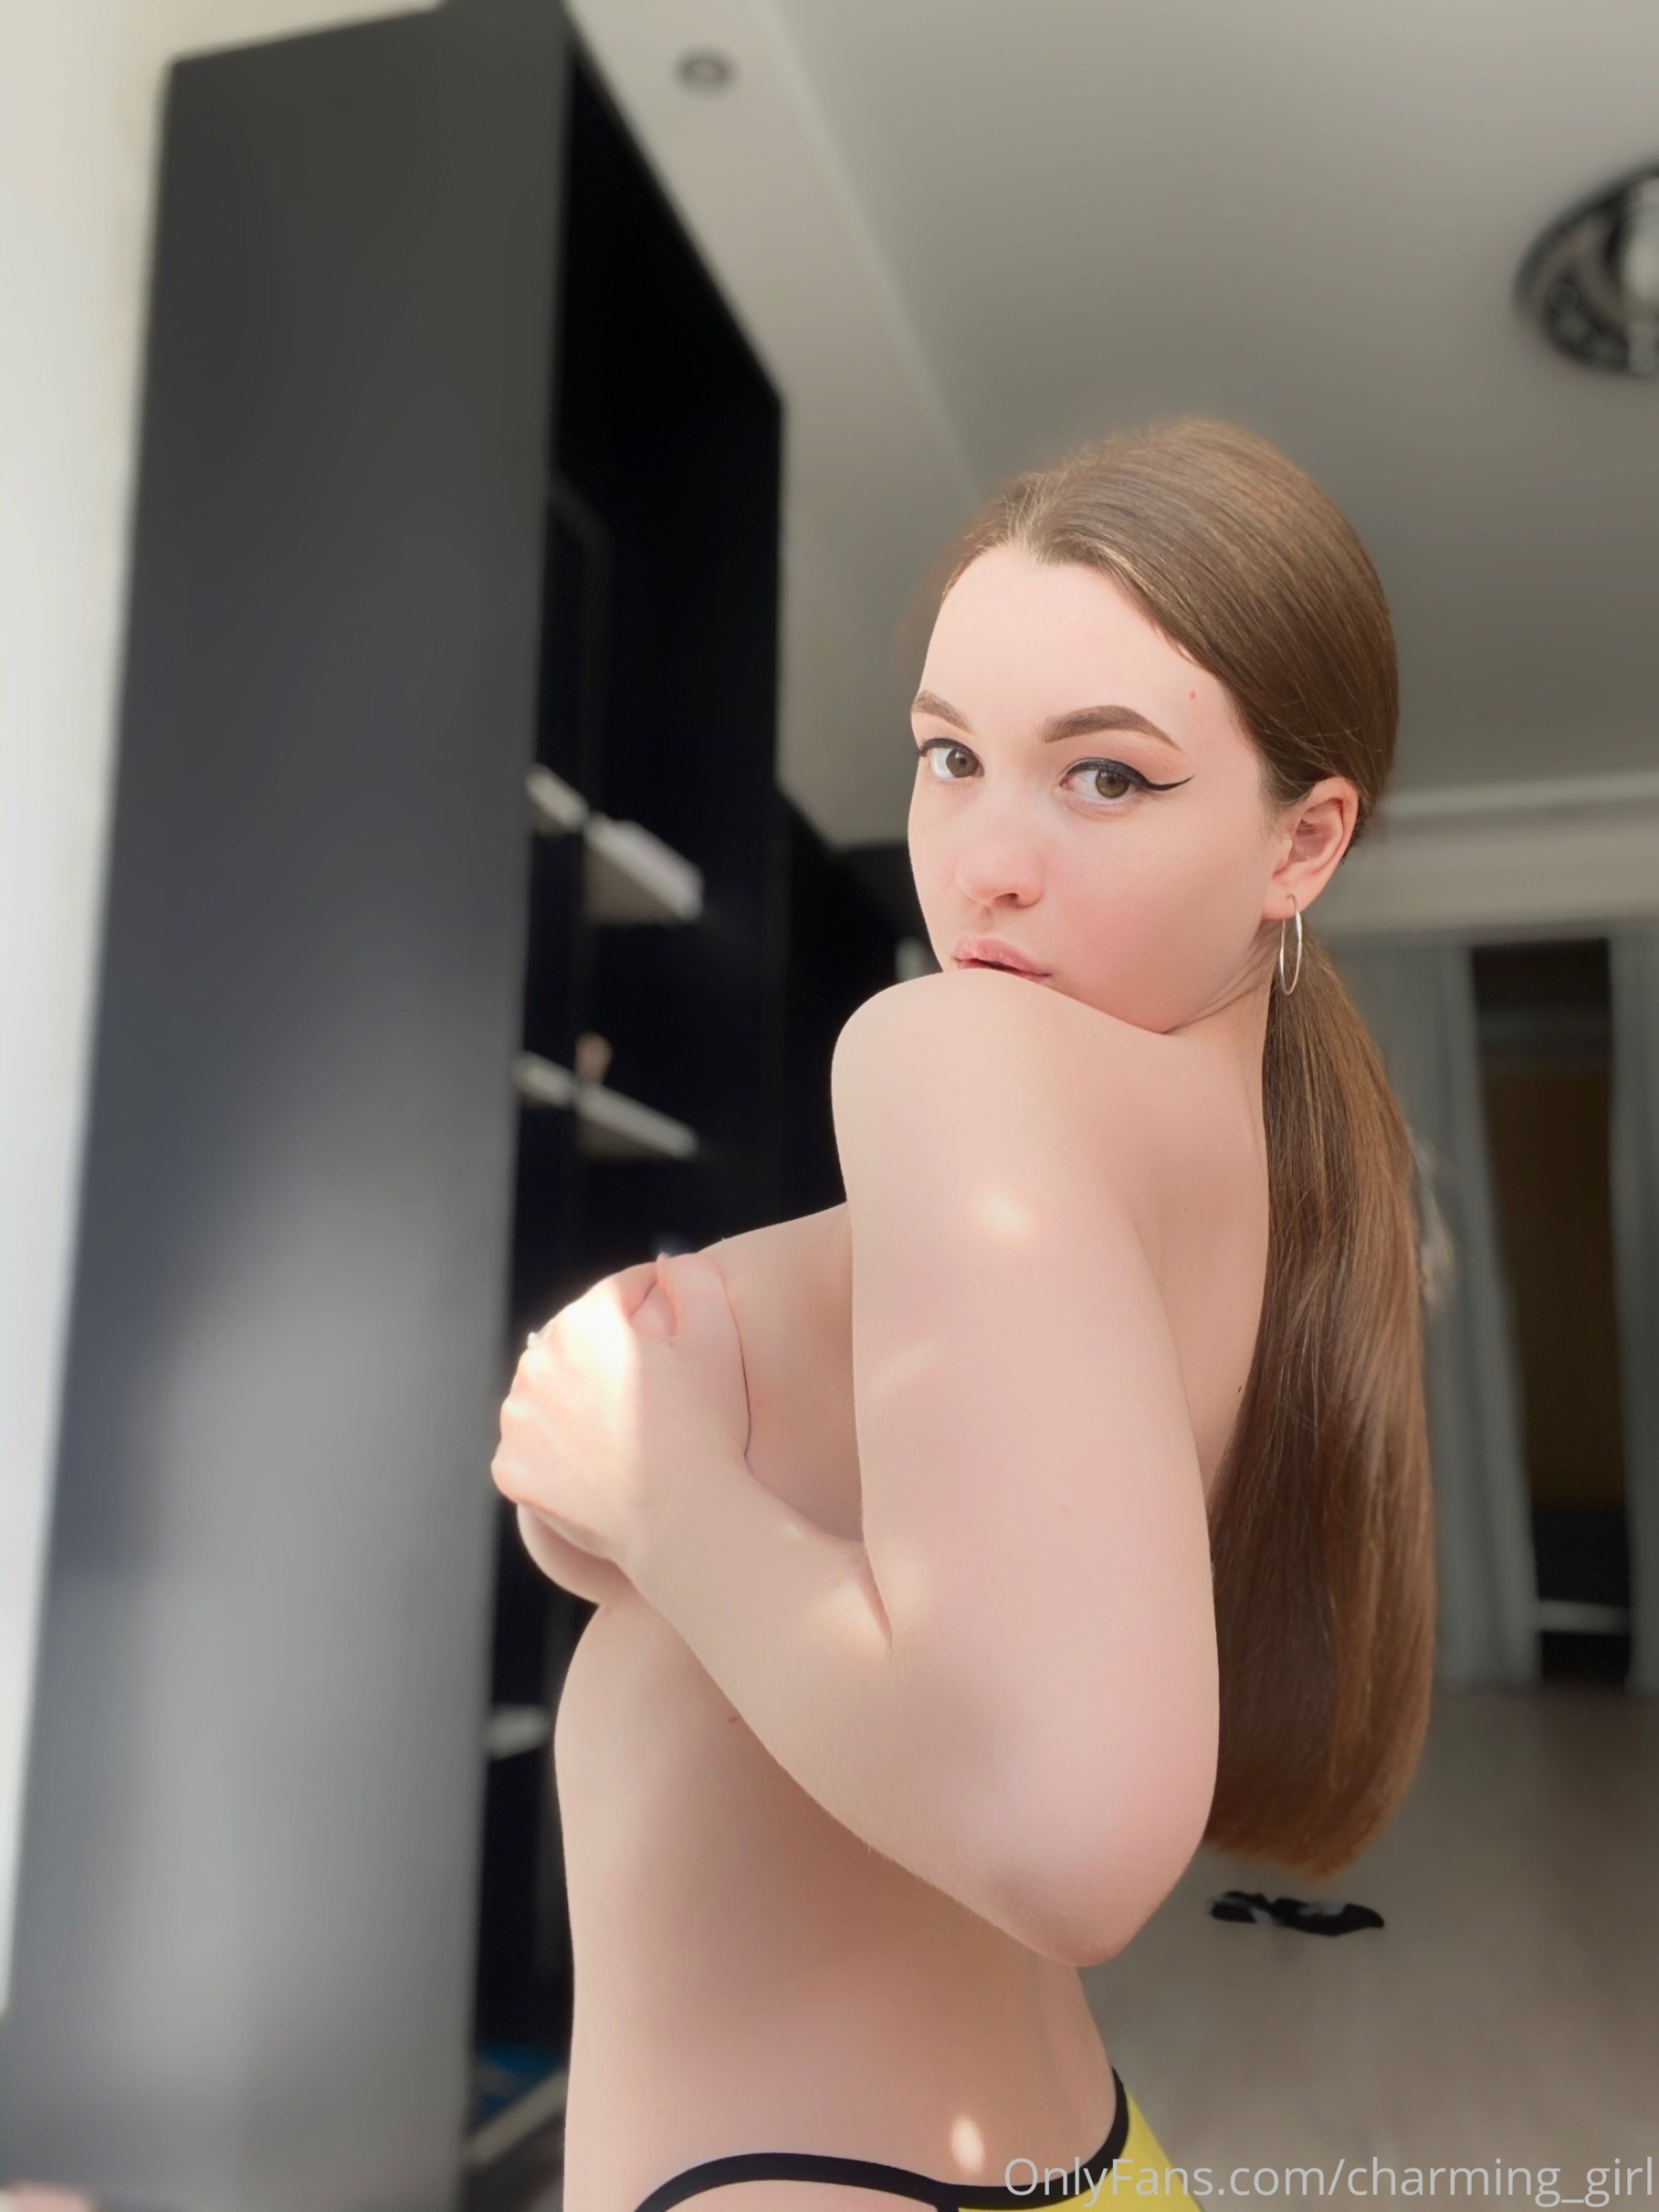 Milana, Charming Girl, Onlyfans 0019